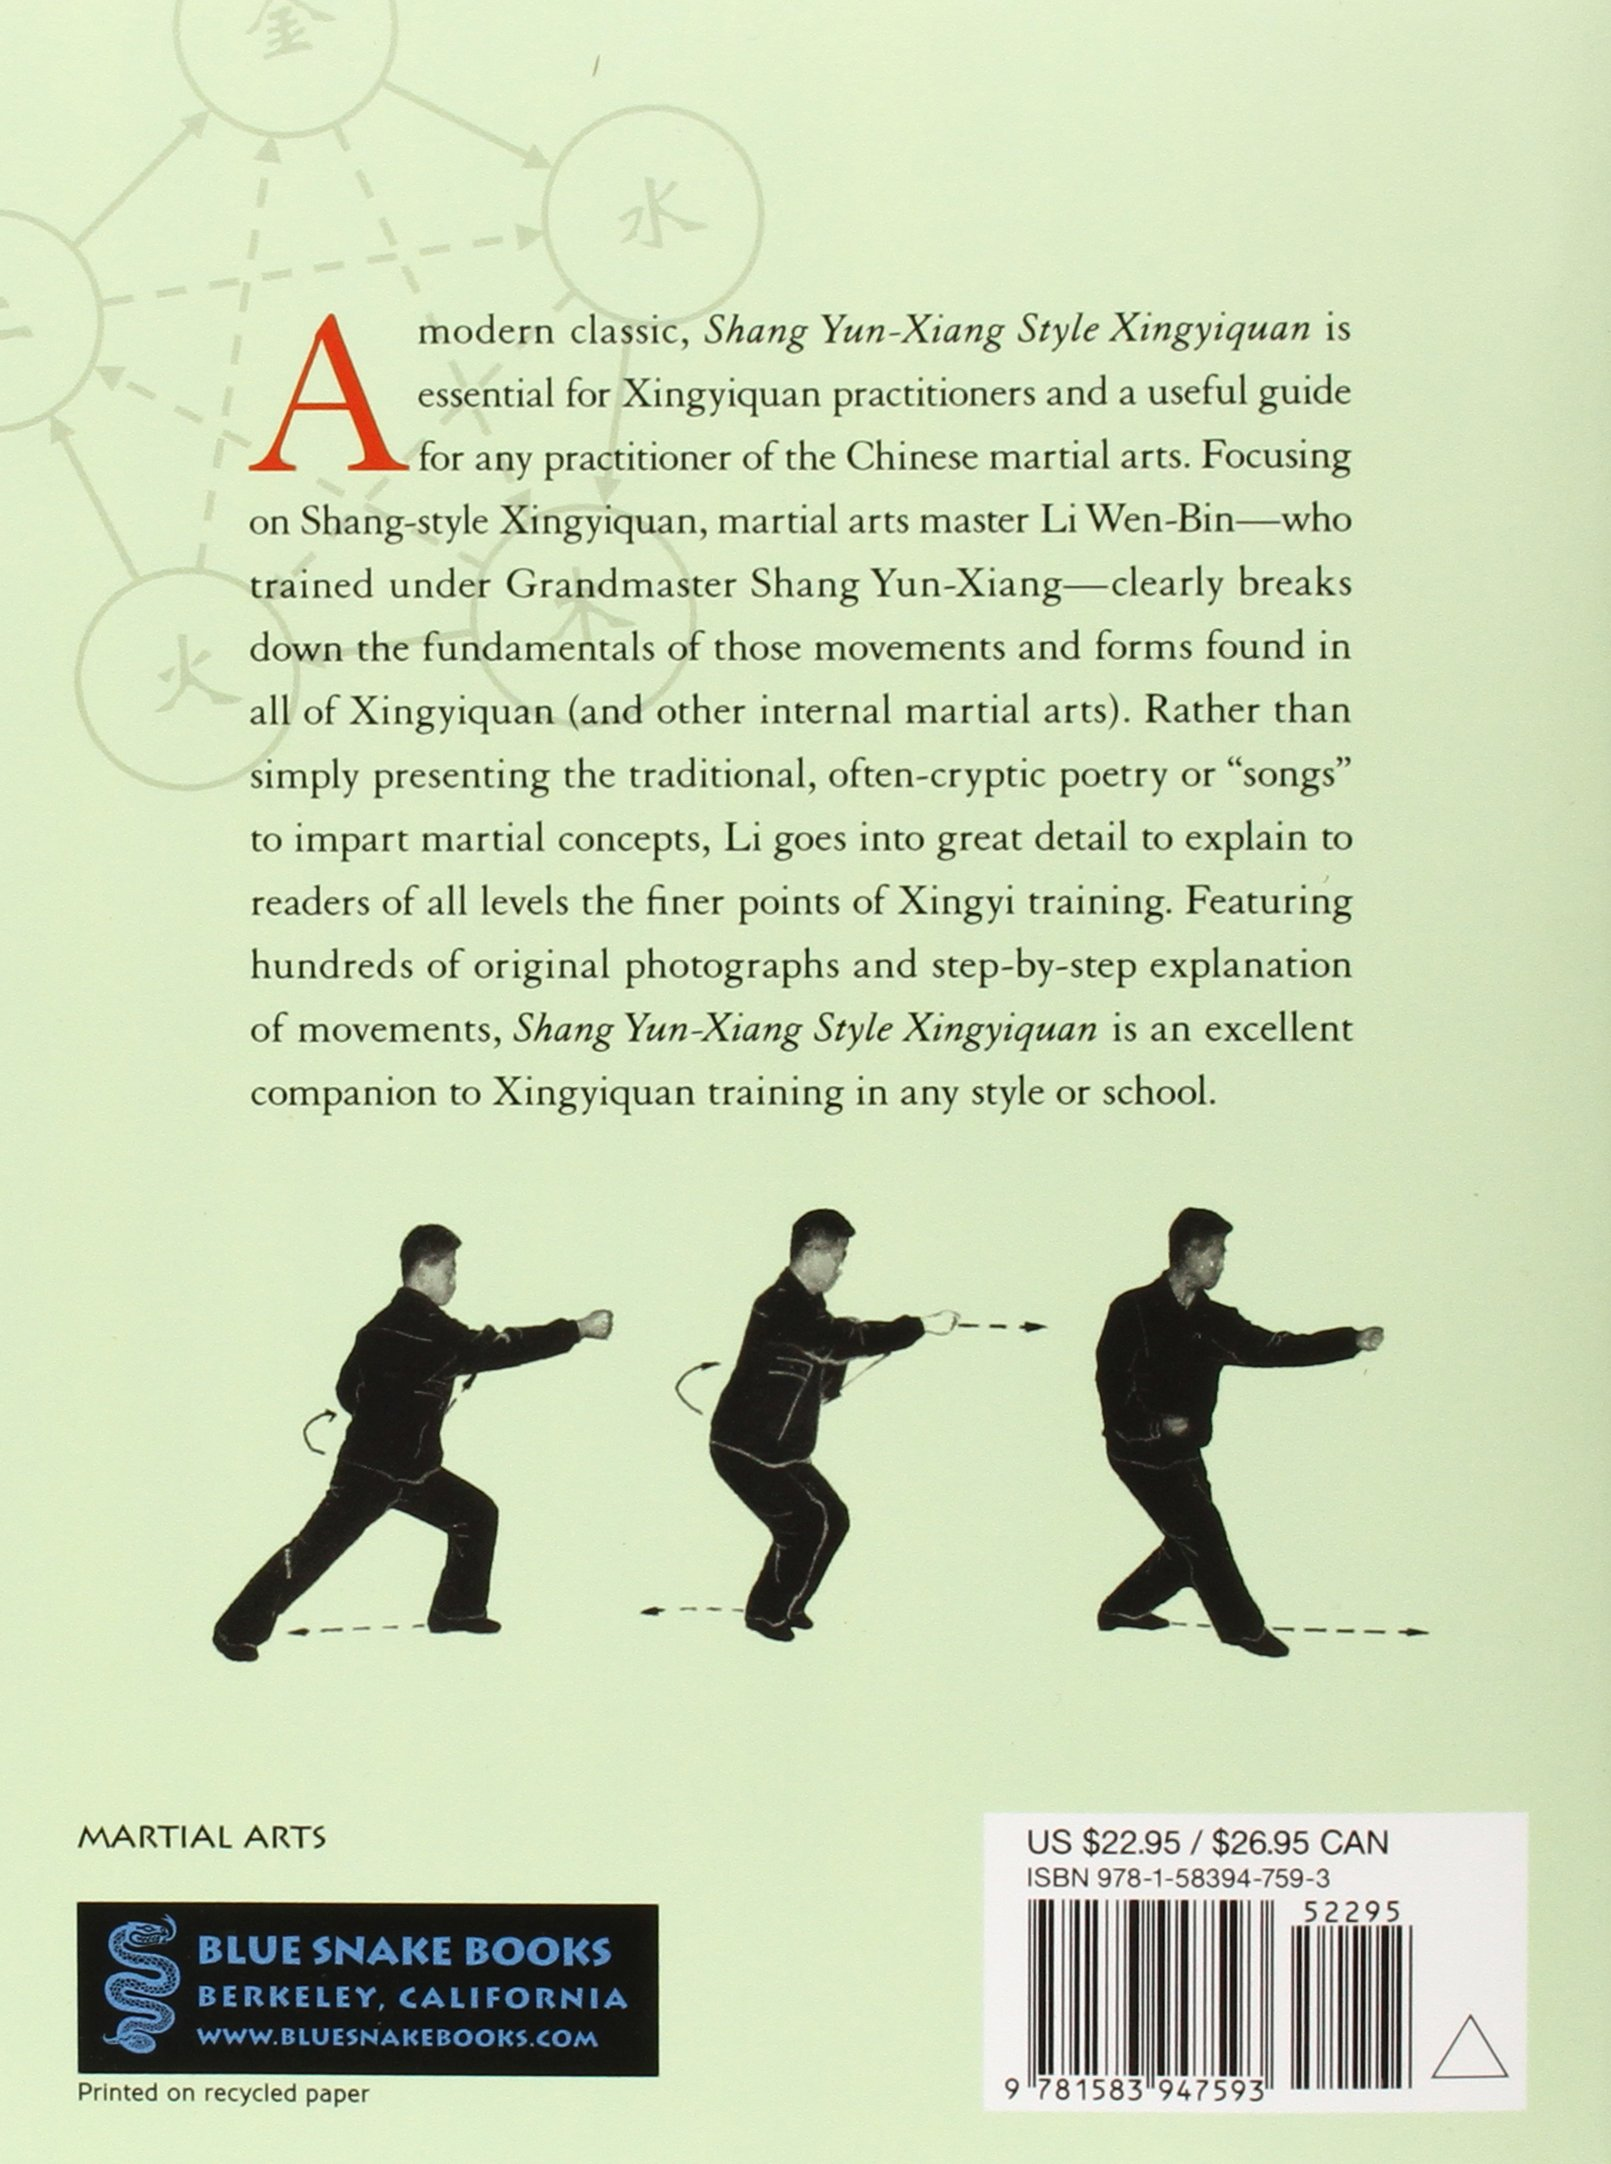 Shang Yun-Xiang Style Xingyiquan: The Foundations and Subtleties of Xingyiquan  Training: Li Wen-Bin, Shang Zhi-Rong, Li Hong, Lu Mei-Hui: 9781583947593:  ...